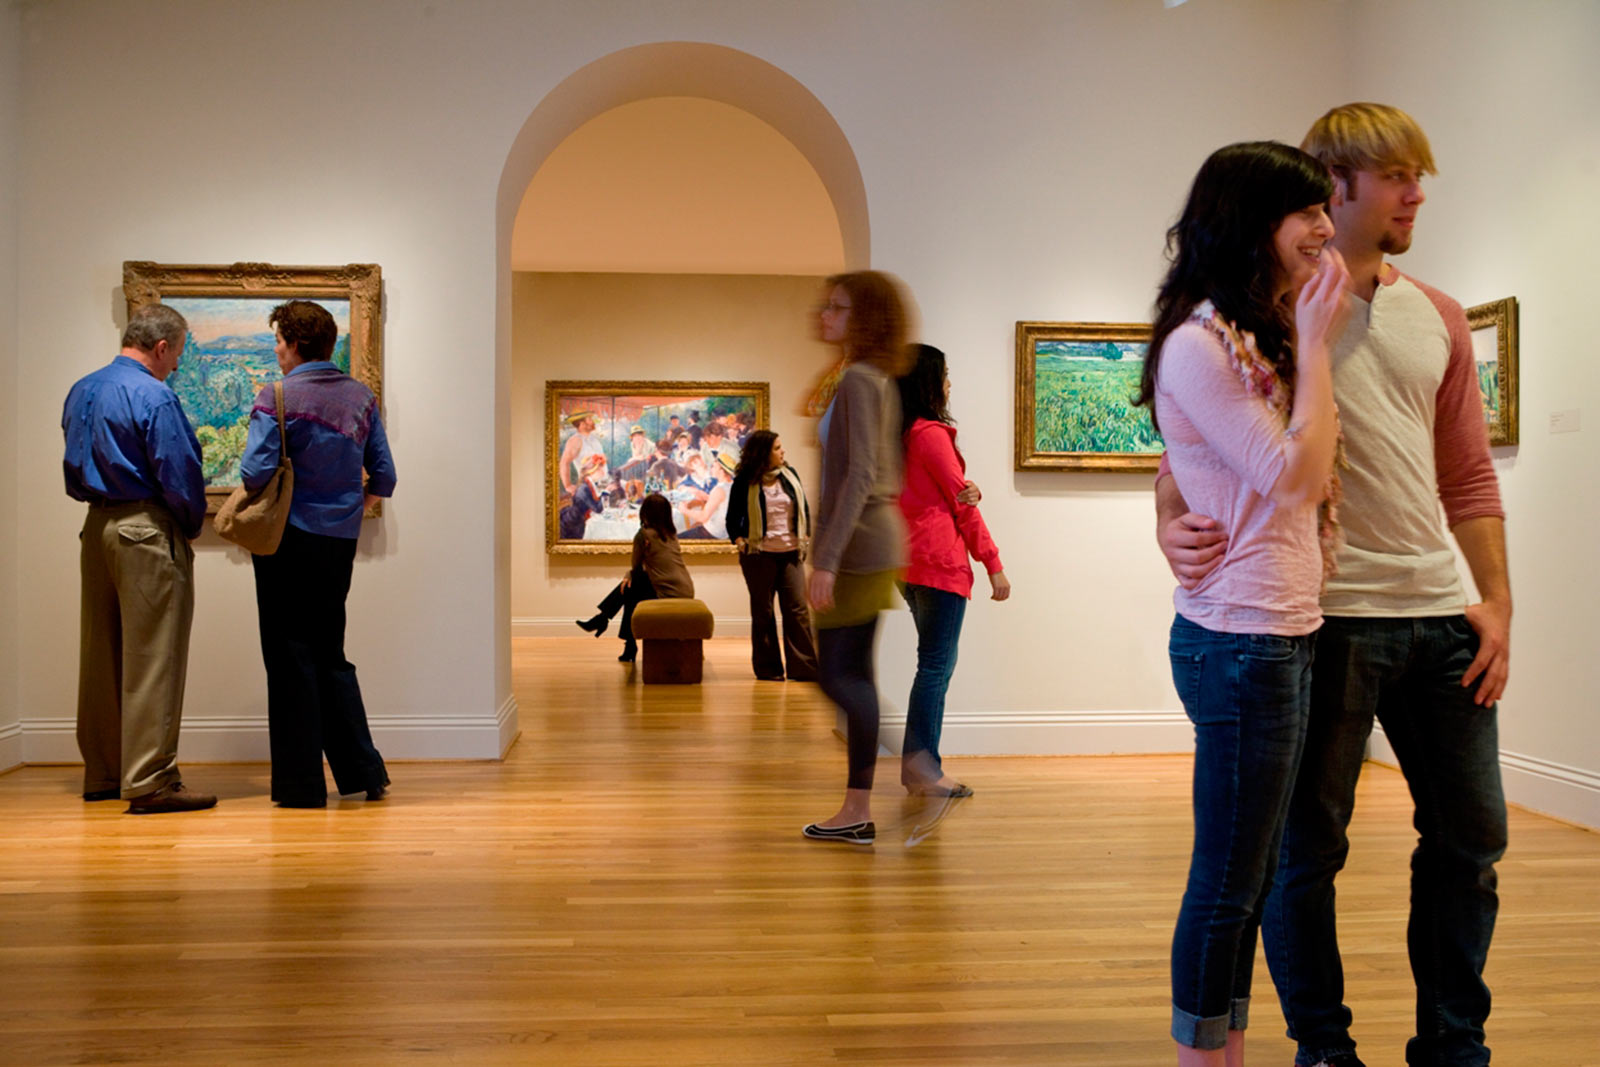 The Phillips Collection - Museums in Washington, DC